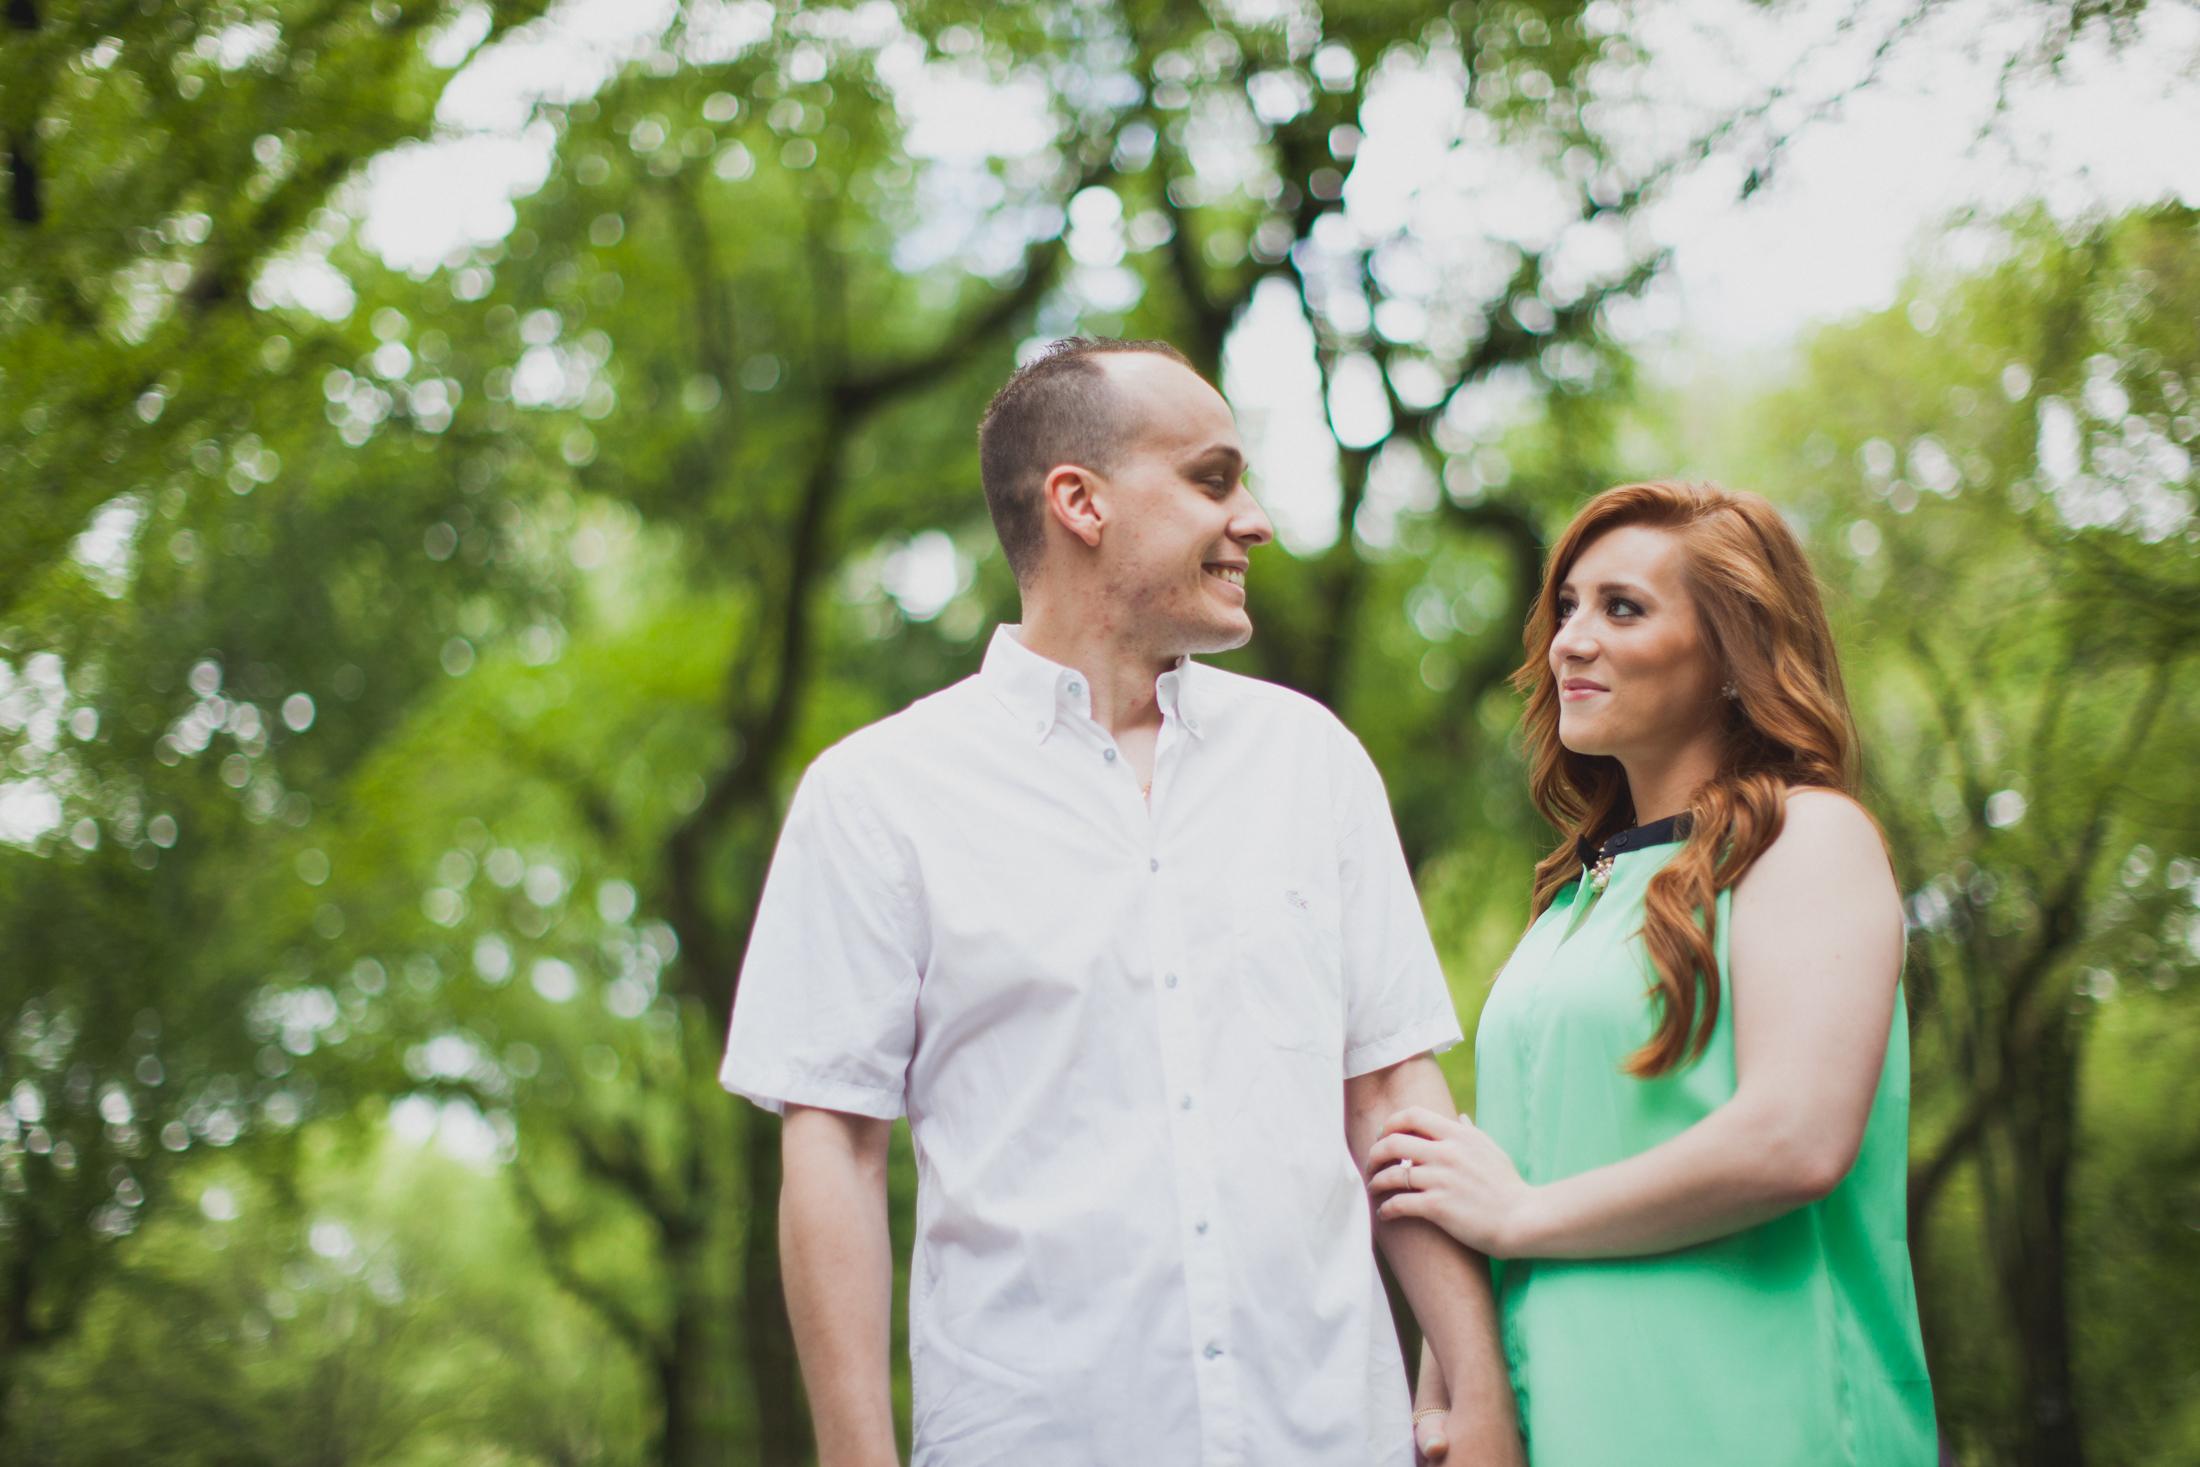 kathryn_mike_engagements-150.jpg